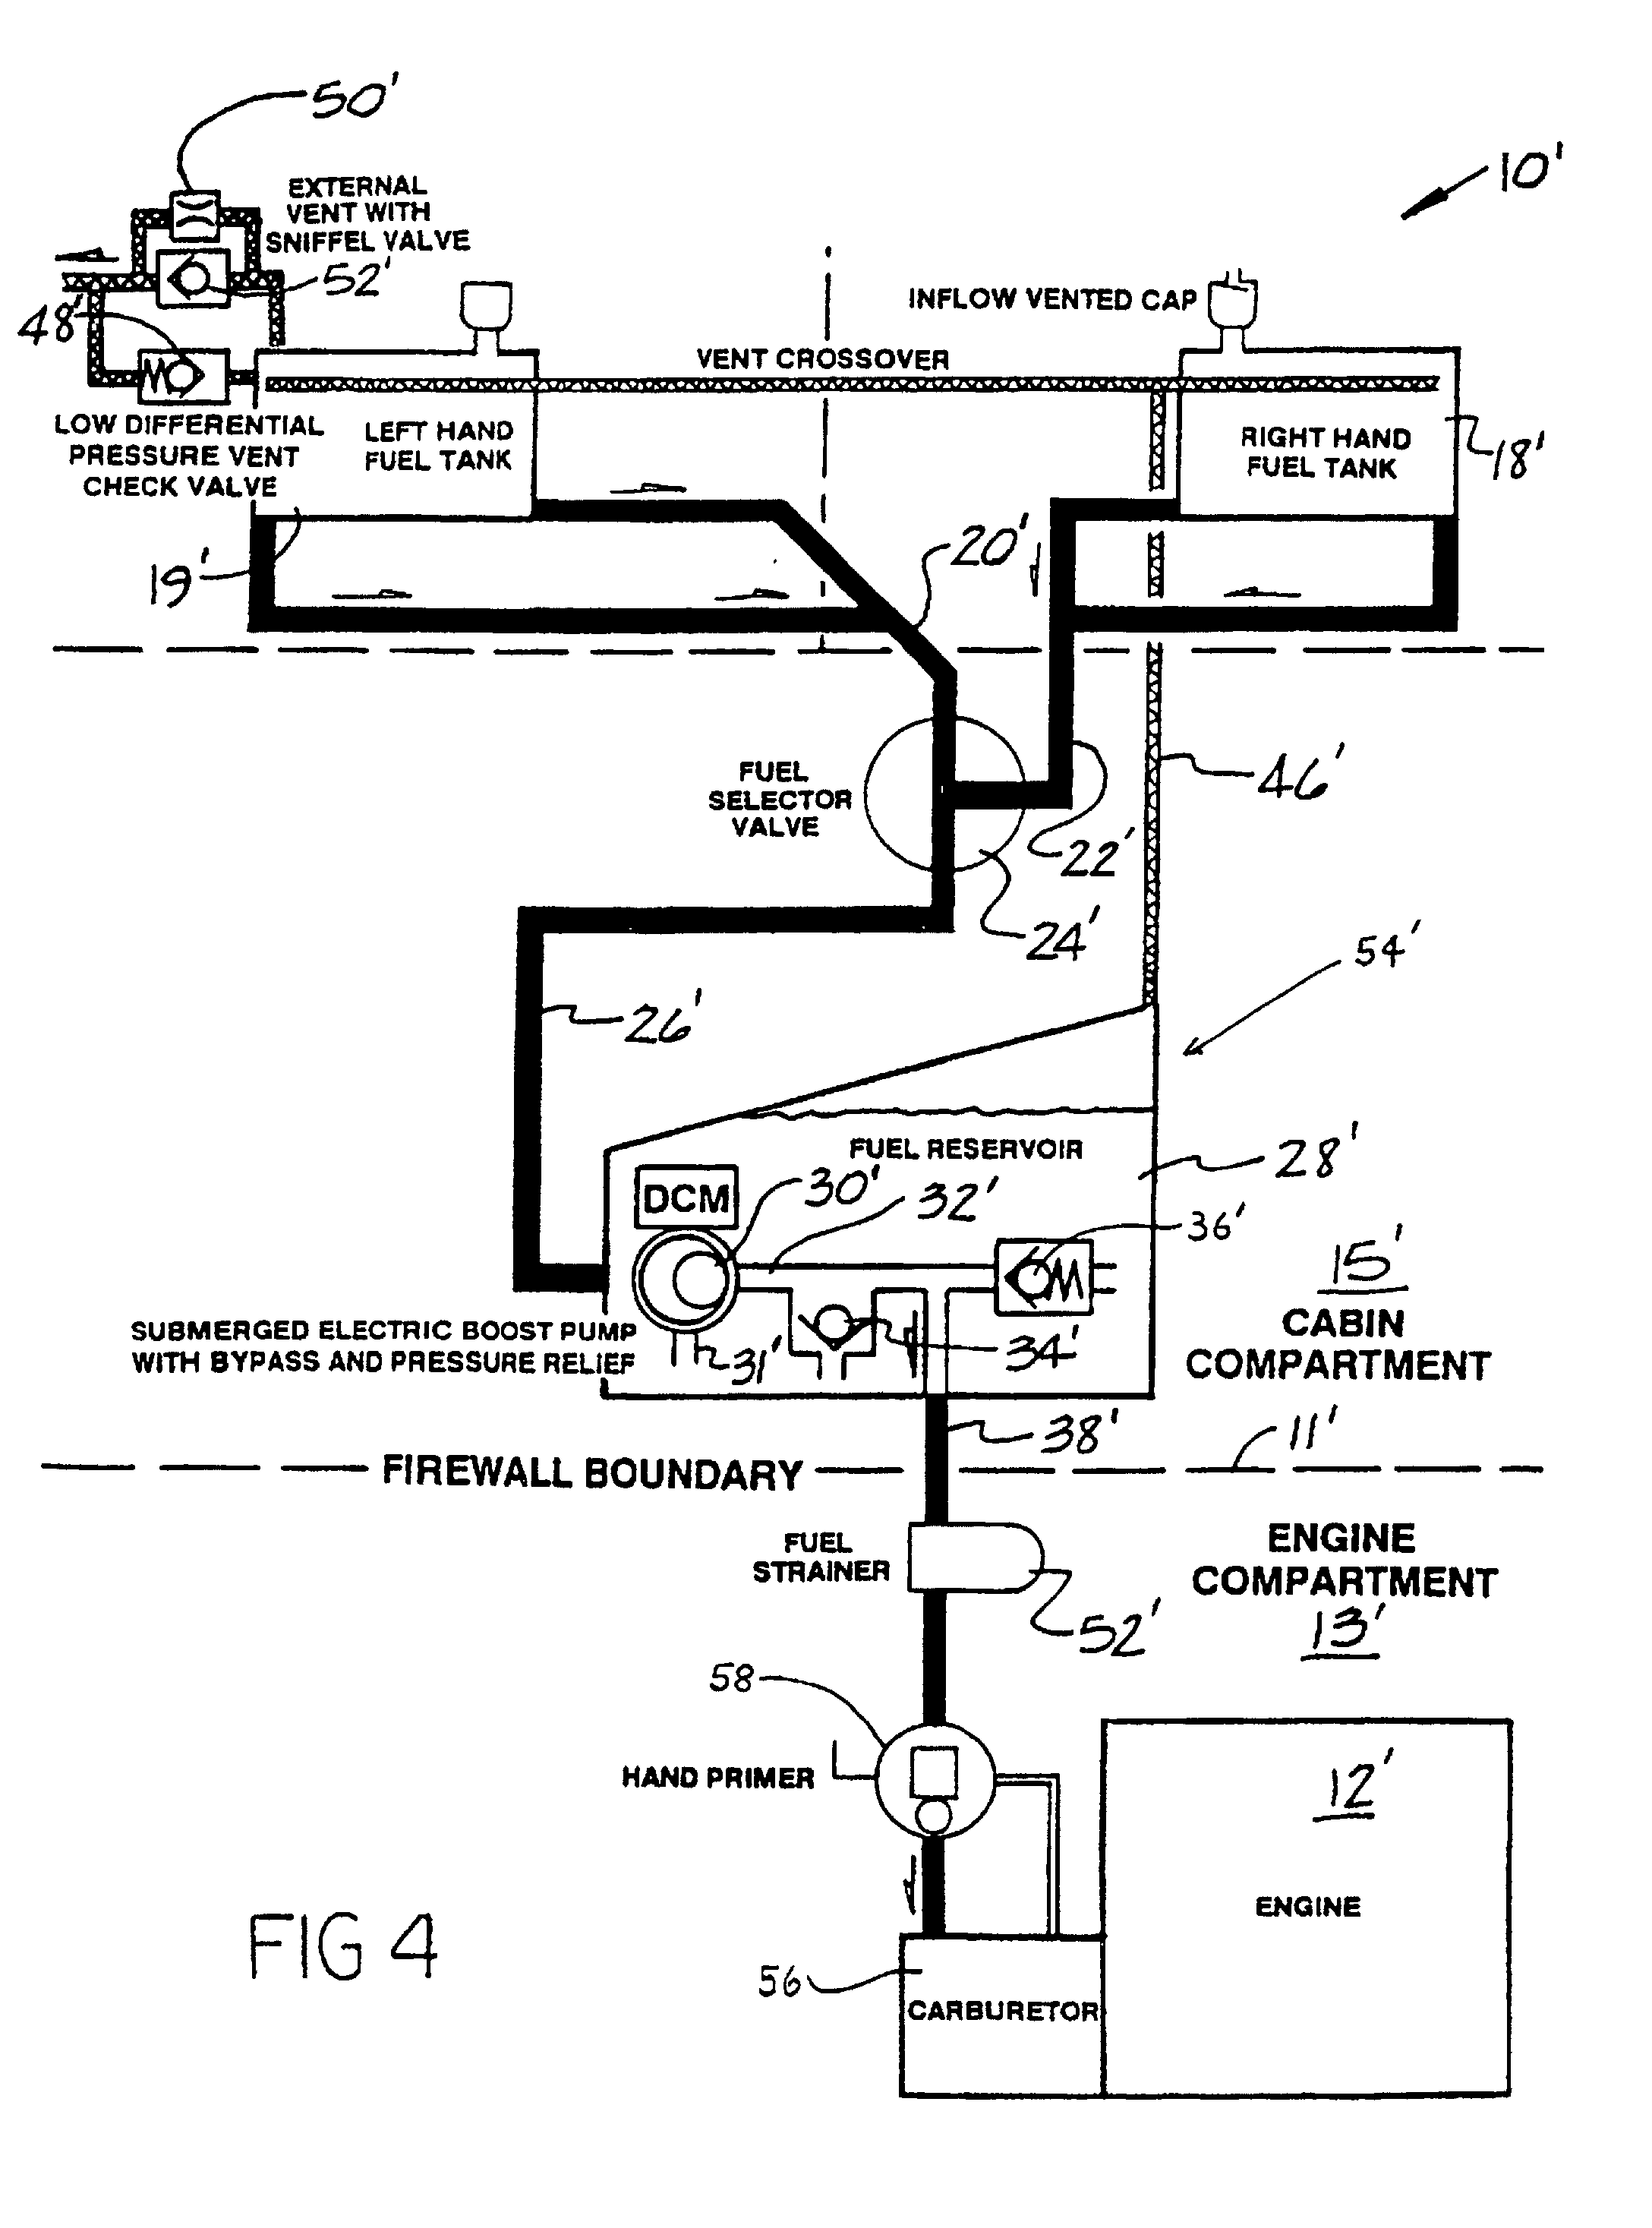 Patent Ep0915250b1 Fuel Systems For Avgas With Broad